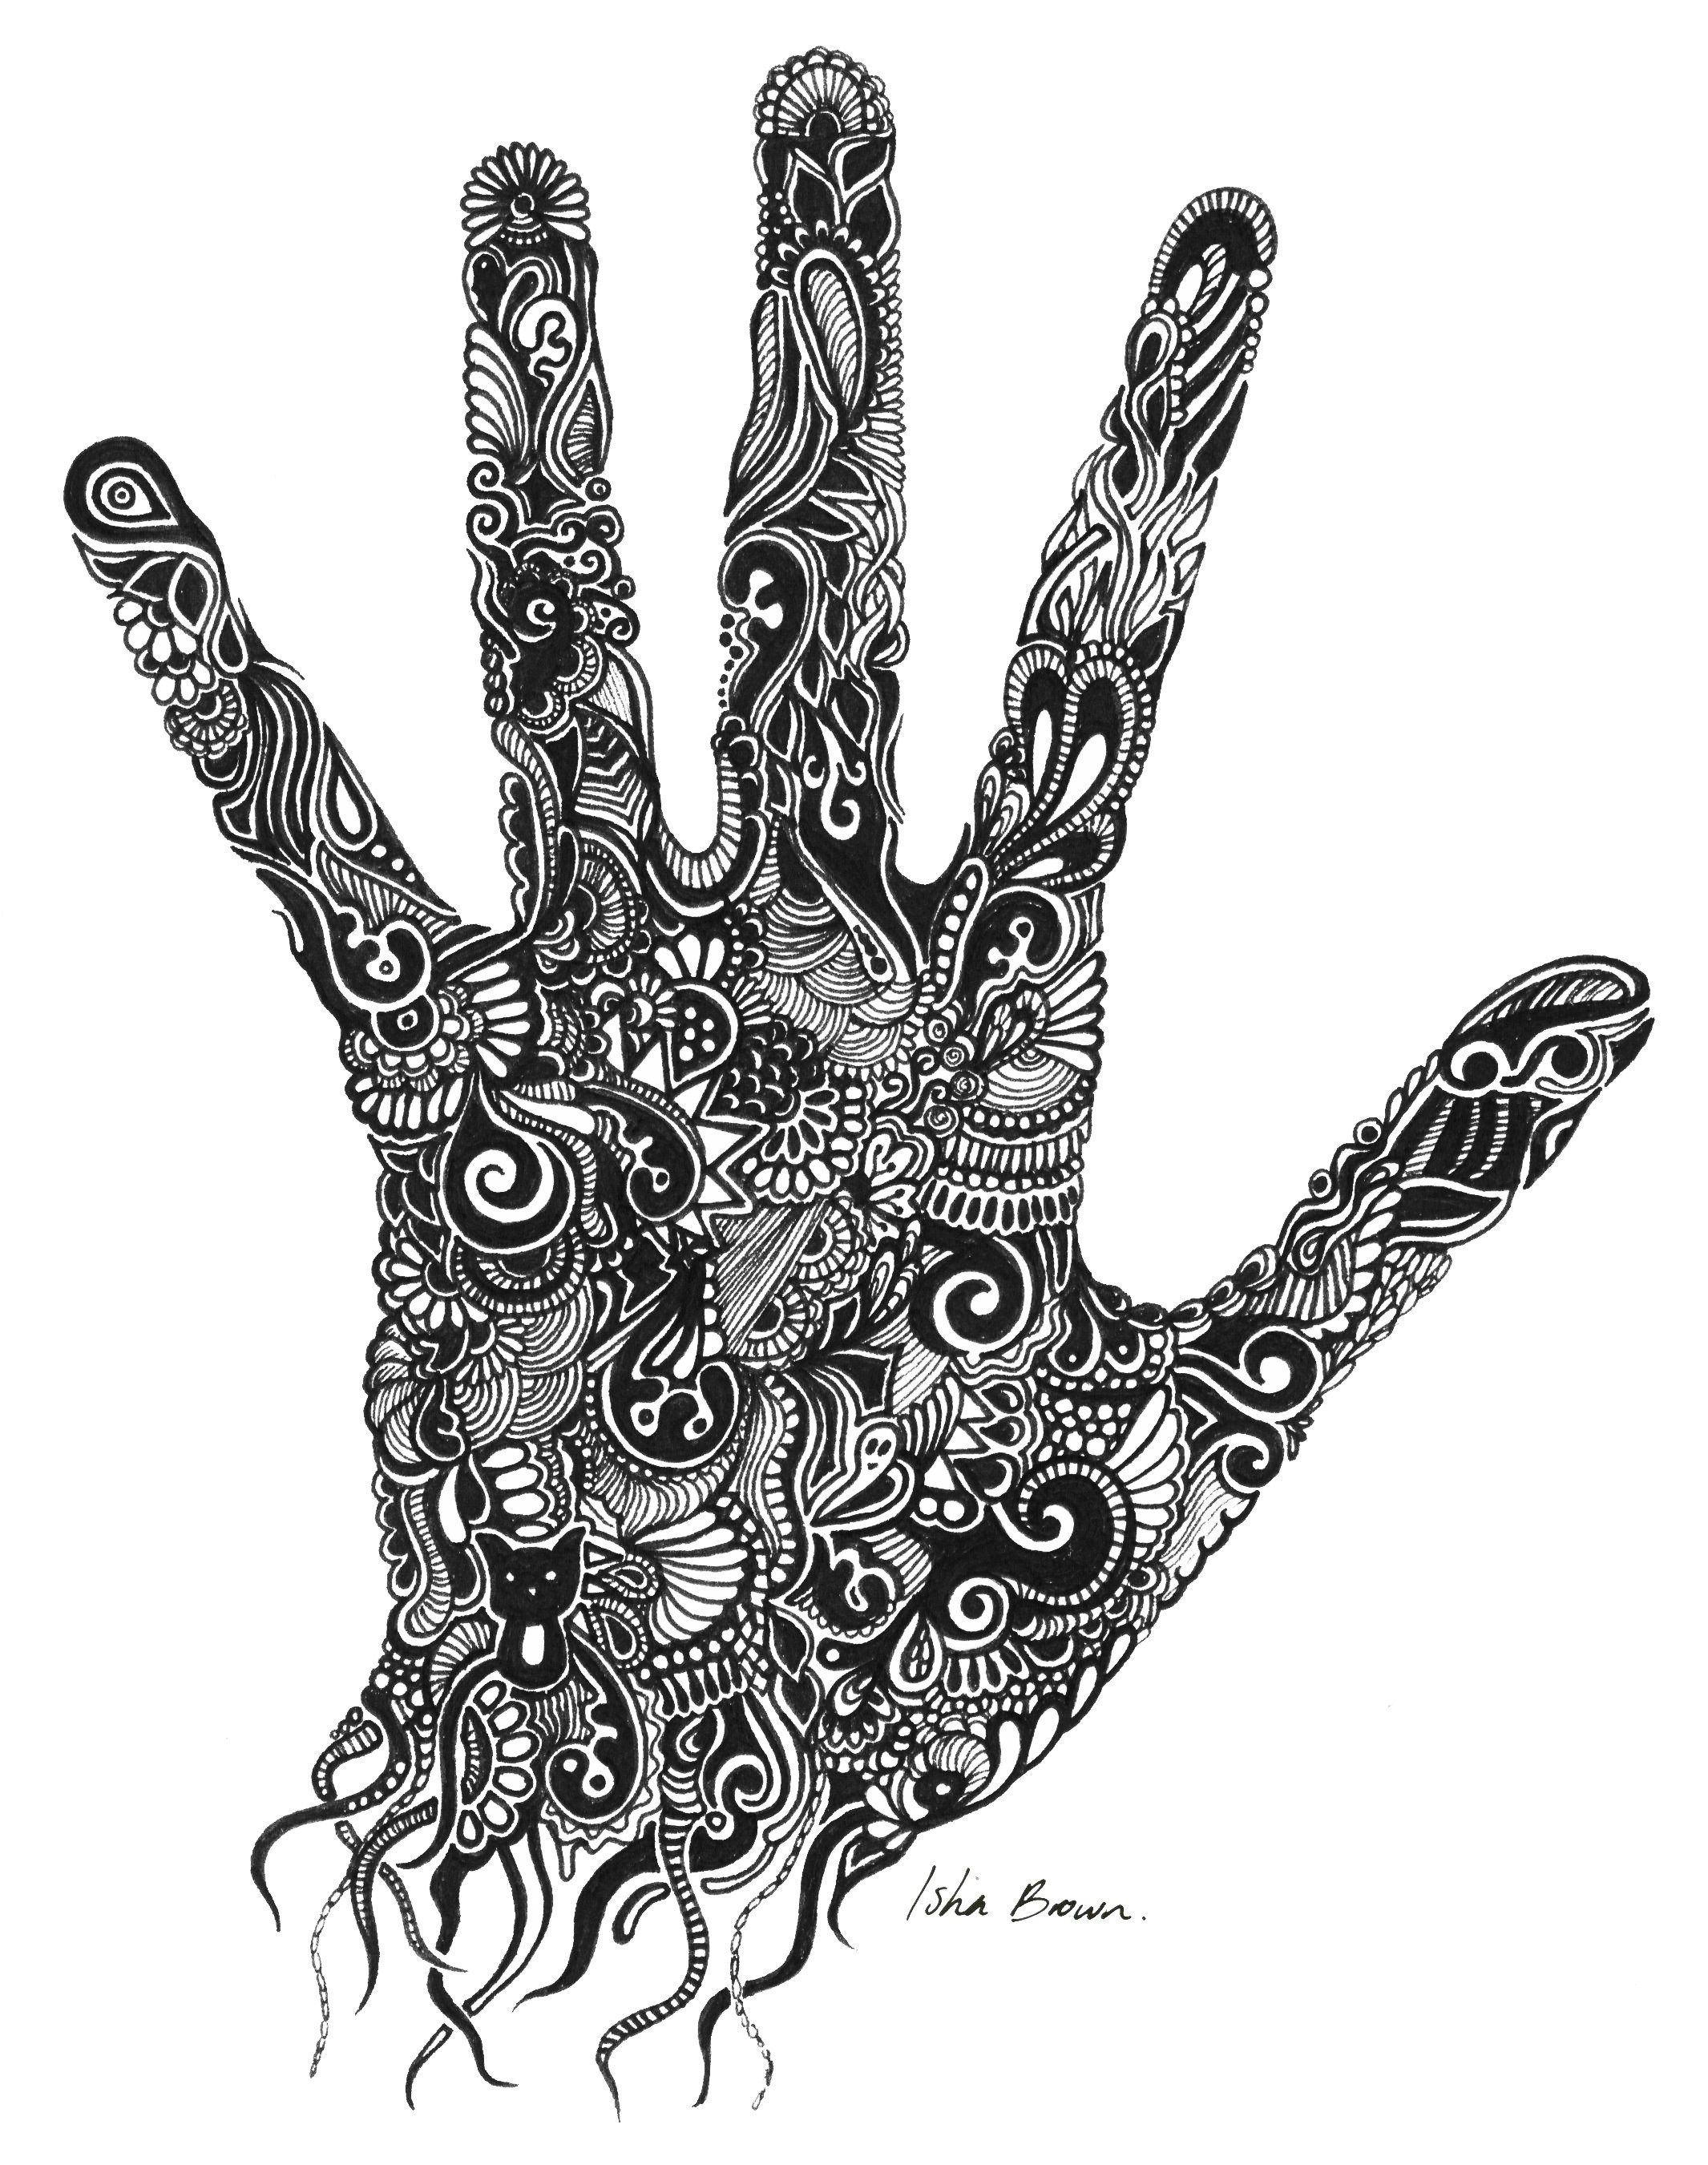 Handprint Drawing With Fine Liner By Isha Brown Art 2d